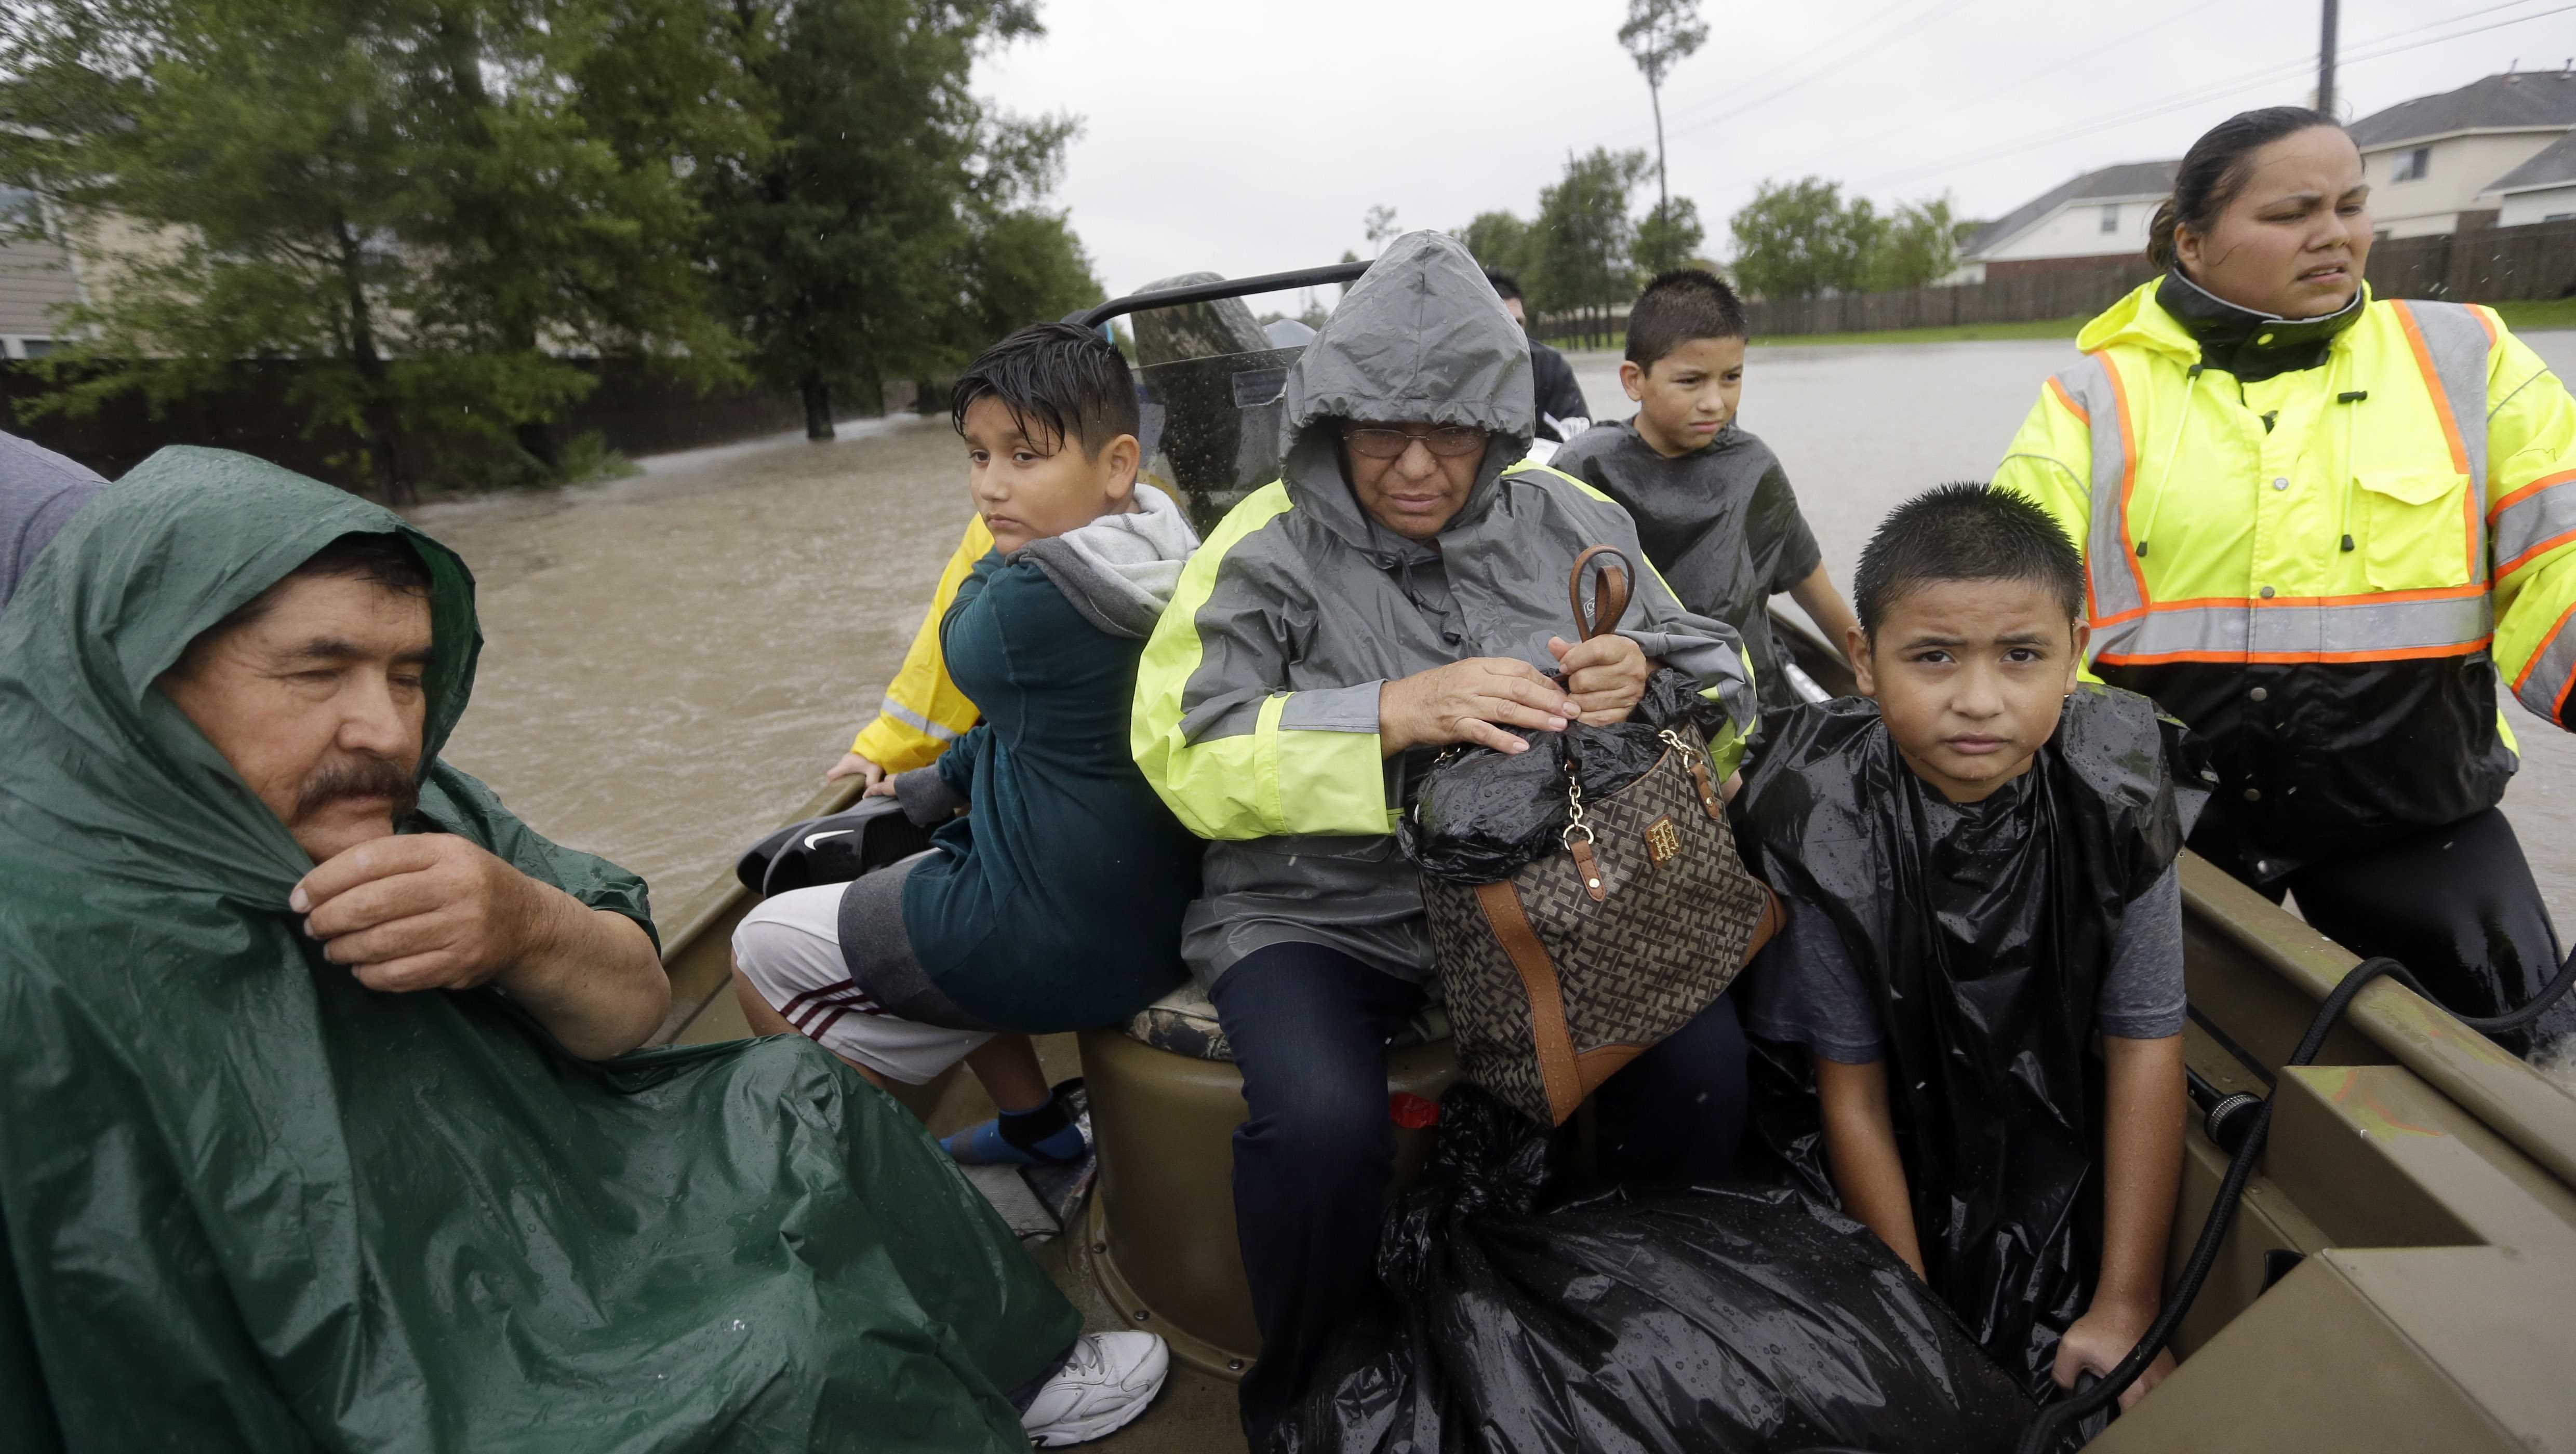 Evacuees ride in a boat down Tidwell Rd. as floodwaters from Tropical Storm Harvey rise Monday, Aug. 28, 2017, in Houston